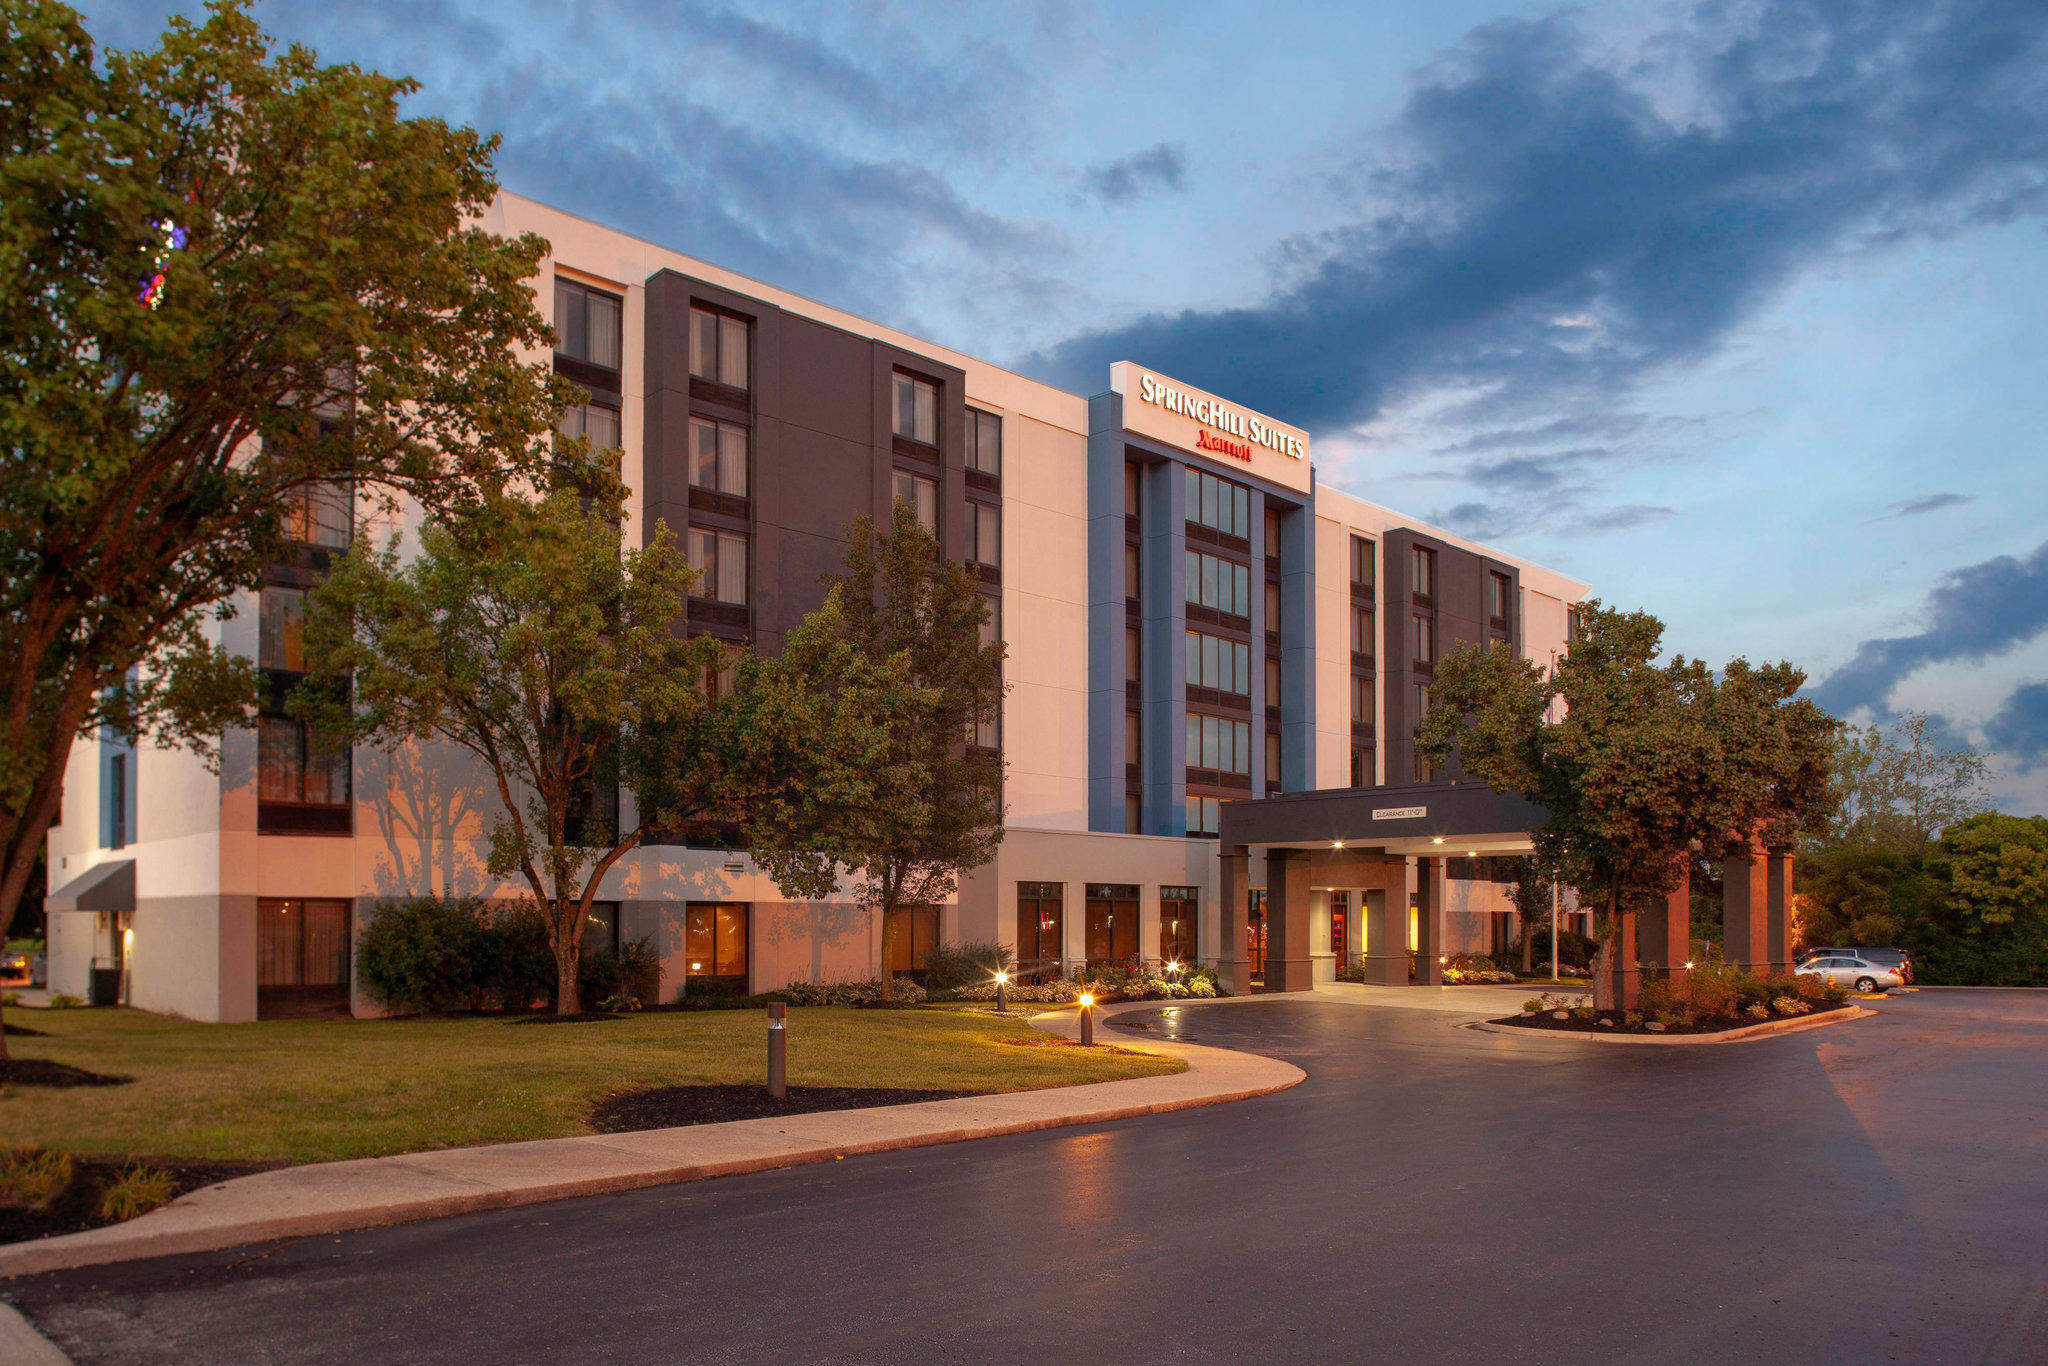 SpringHill Suites by Marriott Cincinnati North/Forest Park